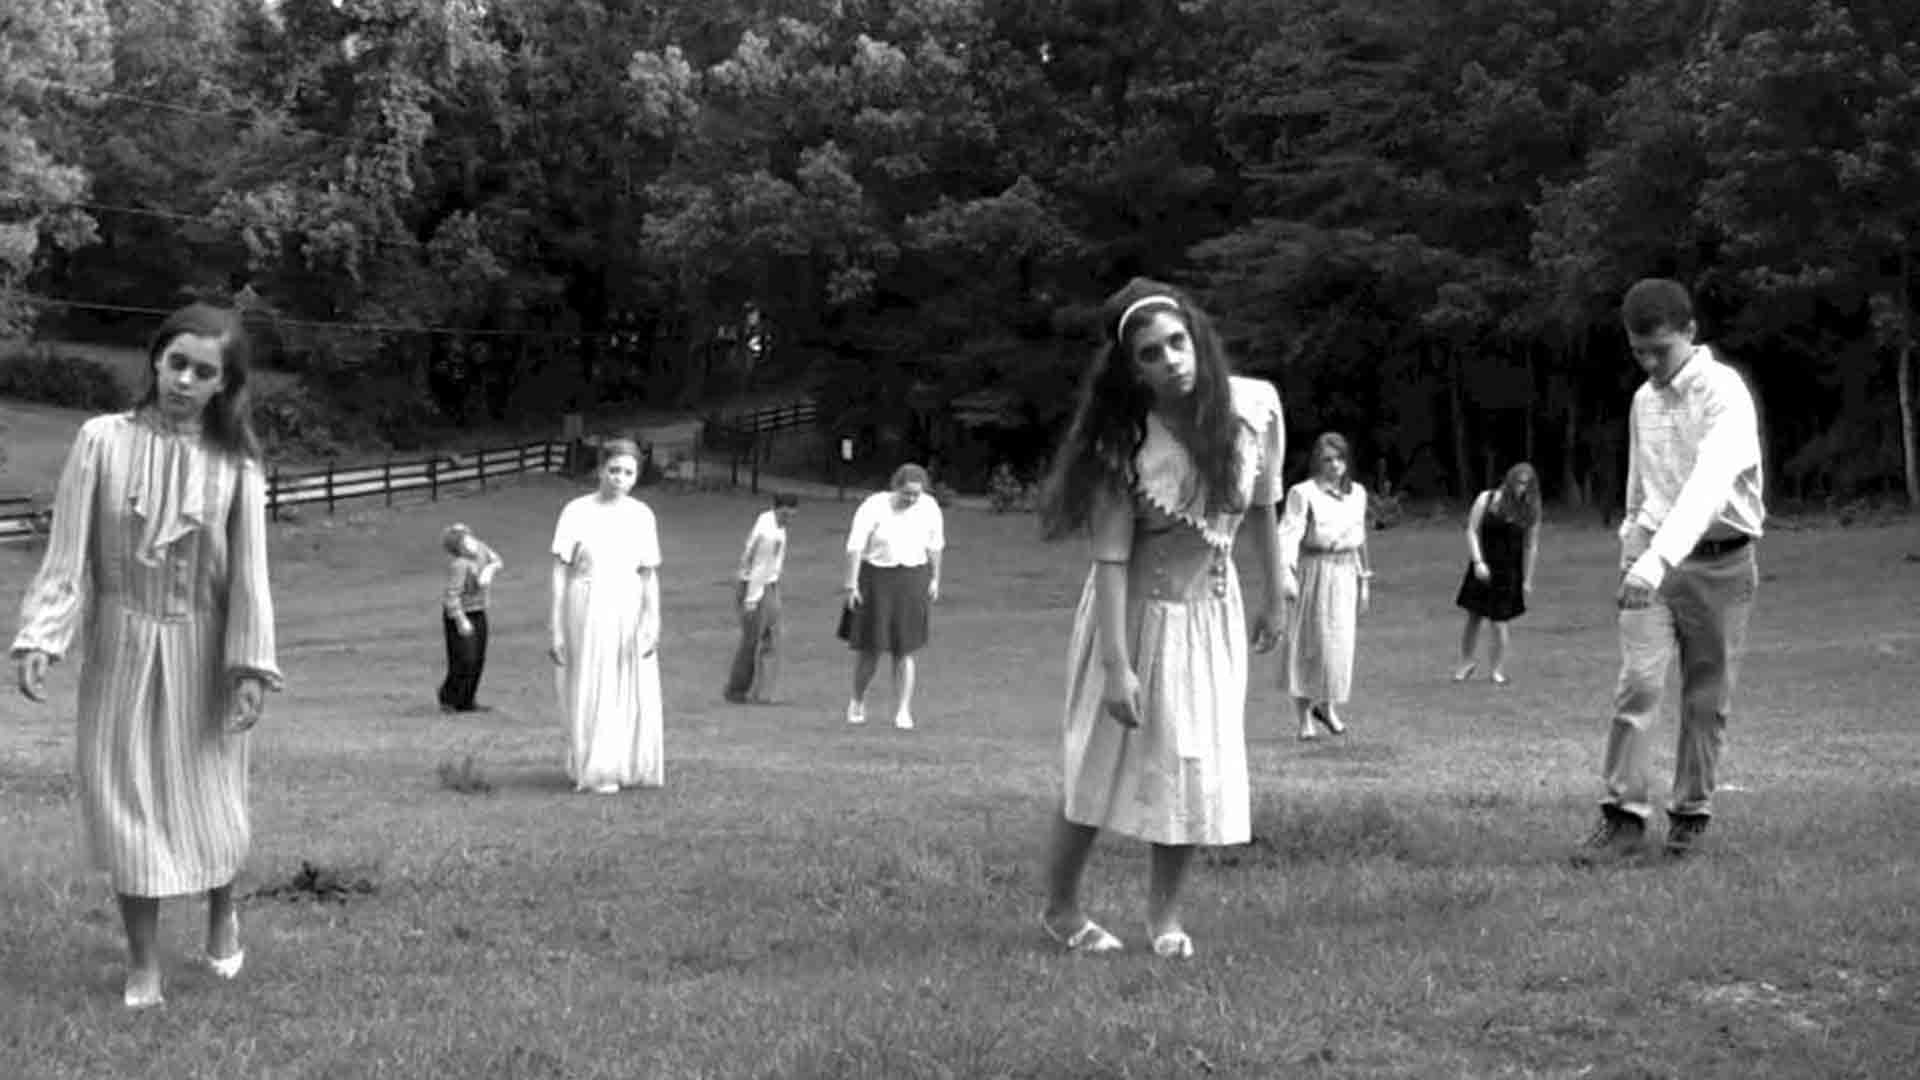 The living dead walking in the movie Night of the Living Dead